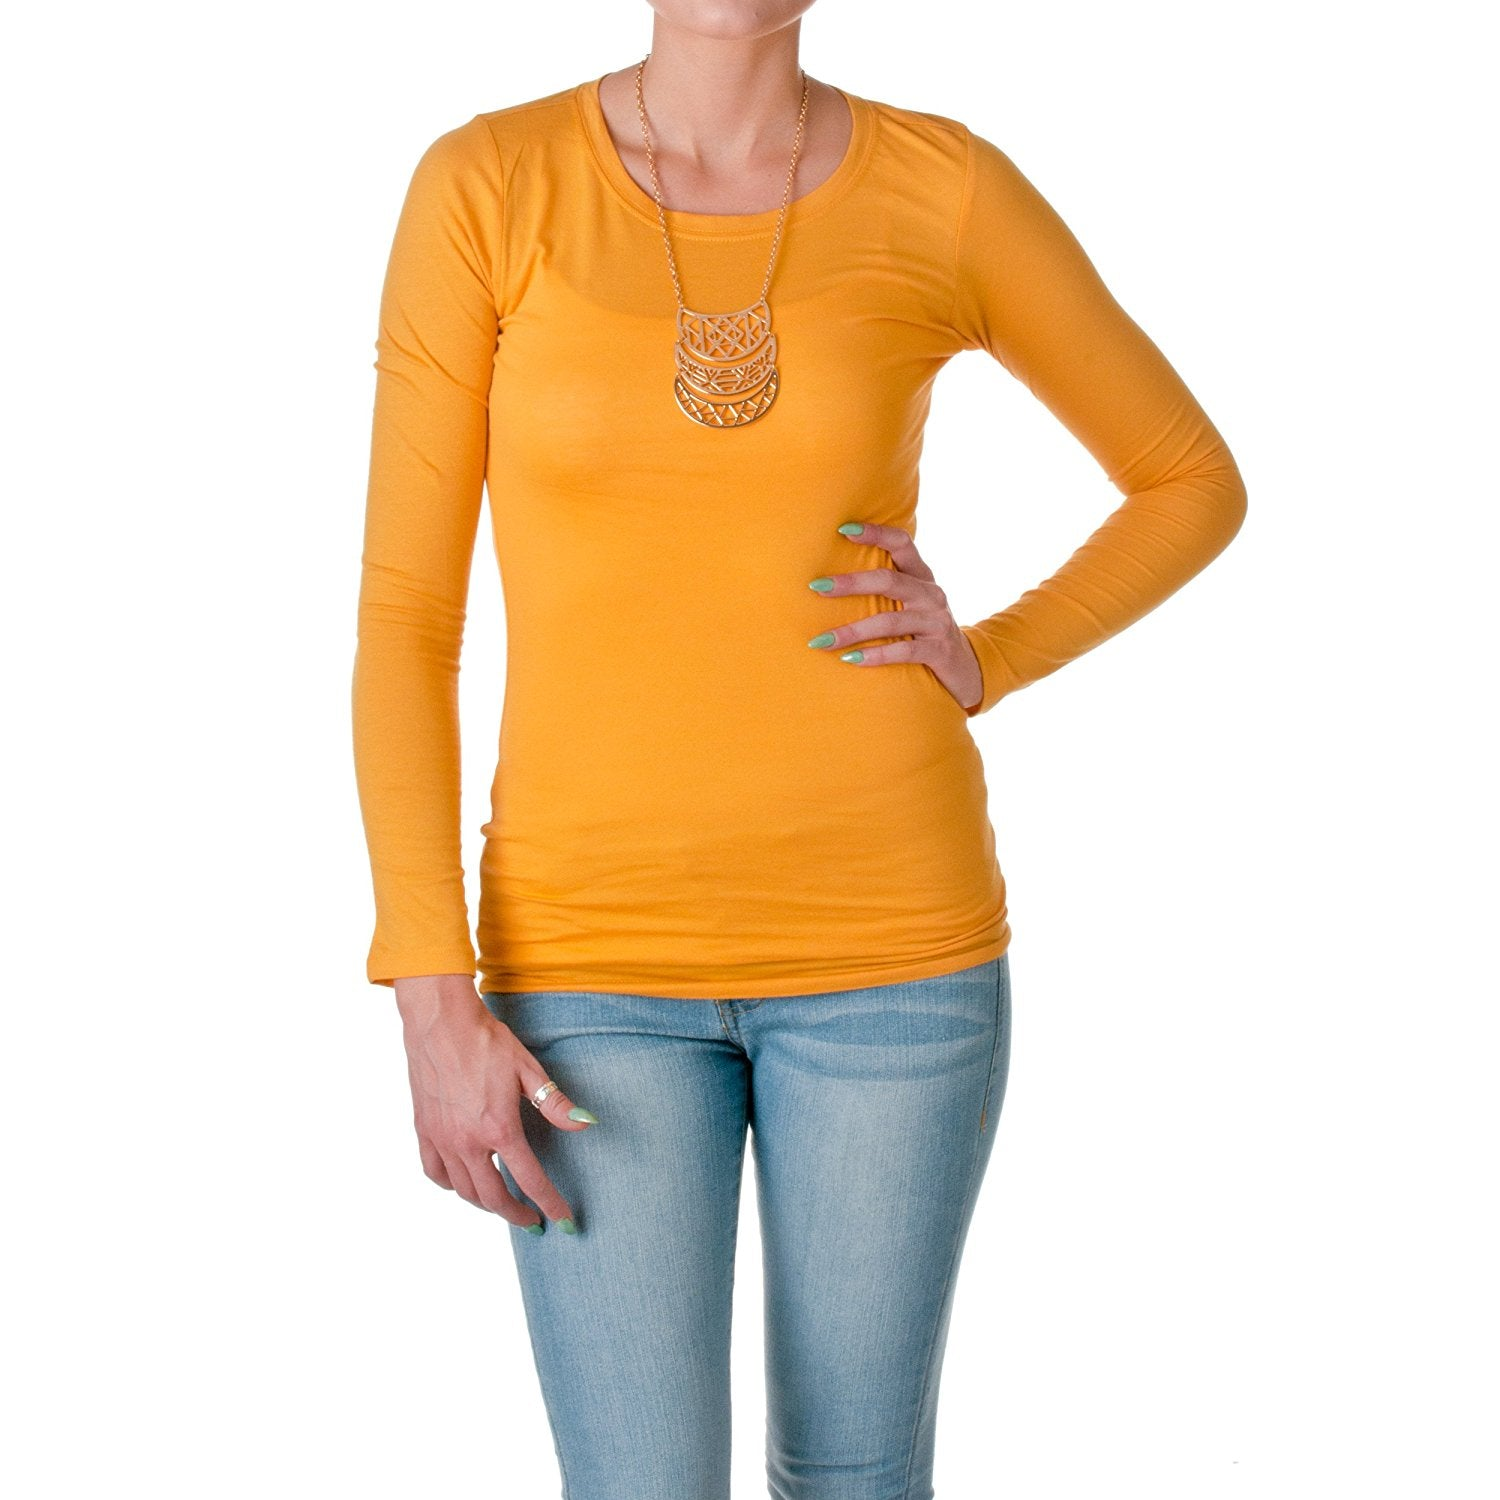 Hollywood Star Fashion Women's Long Sleeve Crewneck Cotton Top